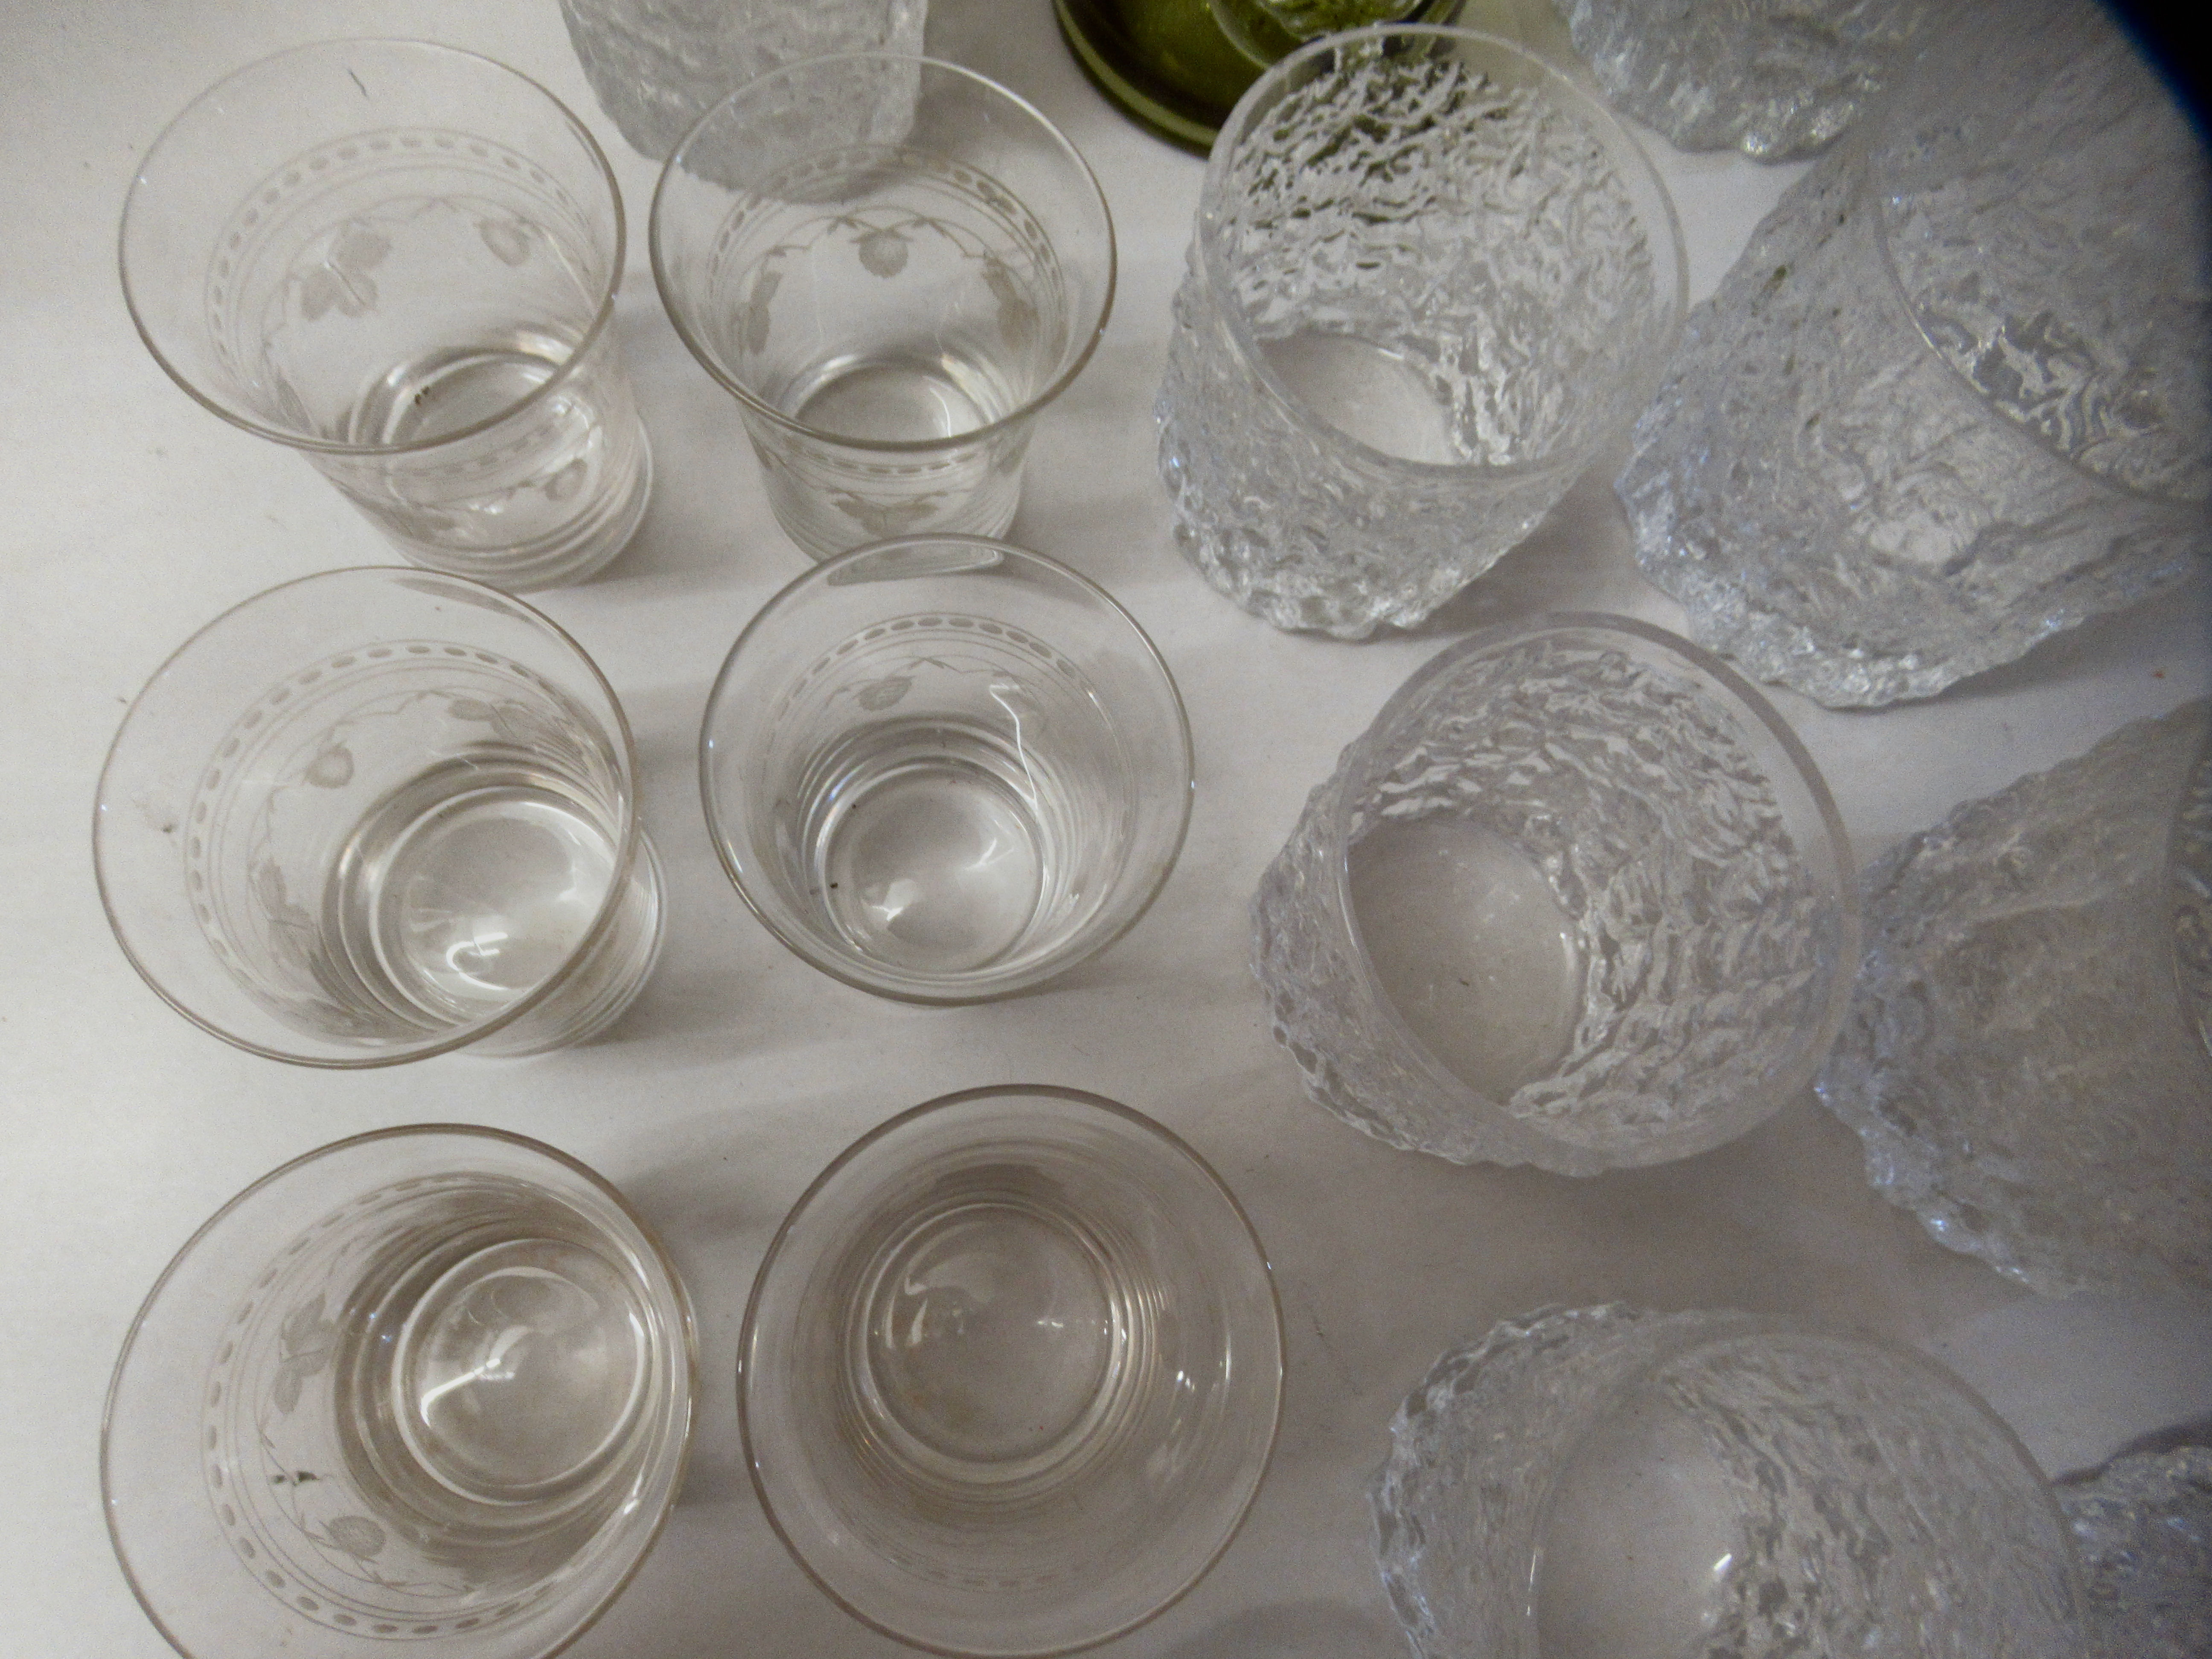 Bark effect Whitefriars cordial and other drinking glasses - Image 5 of 6